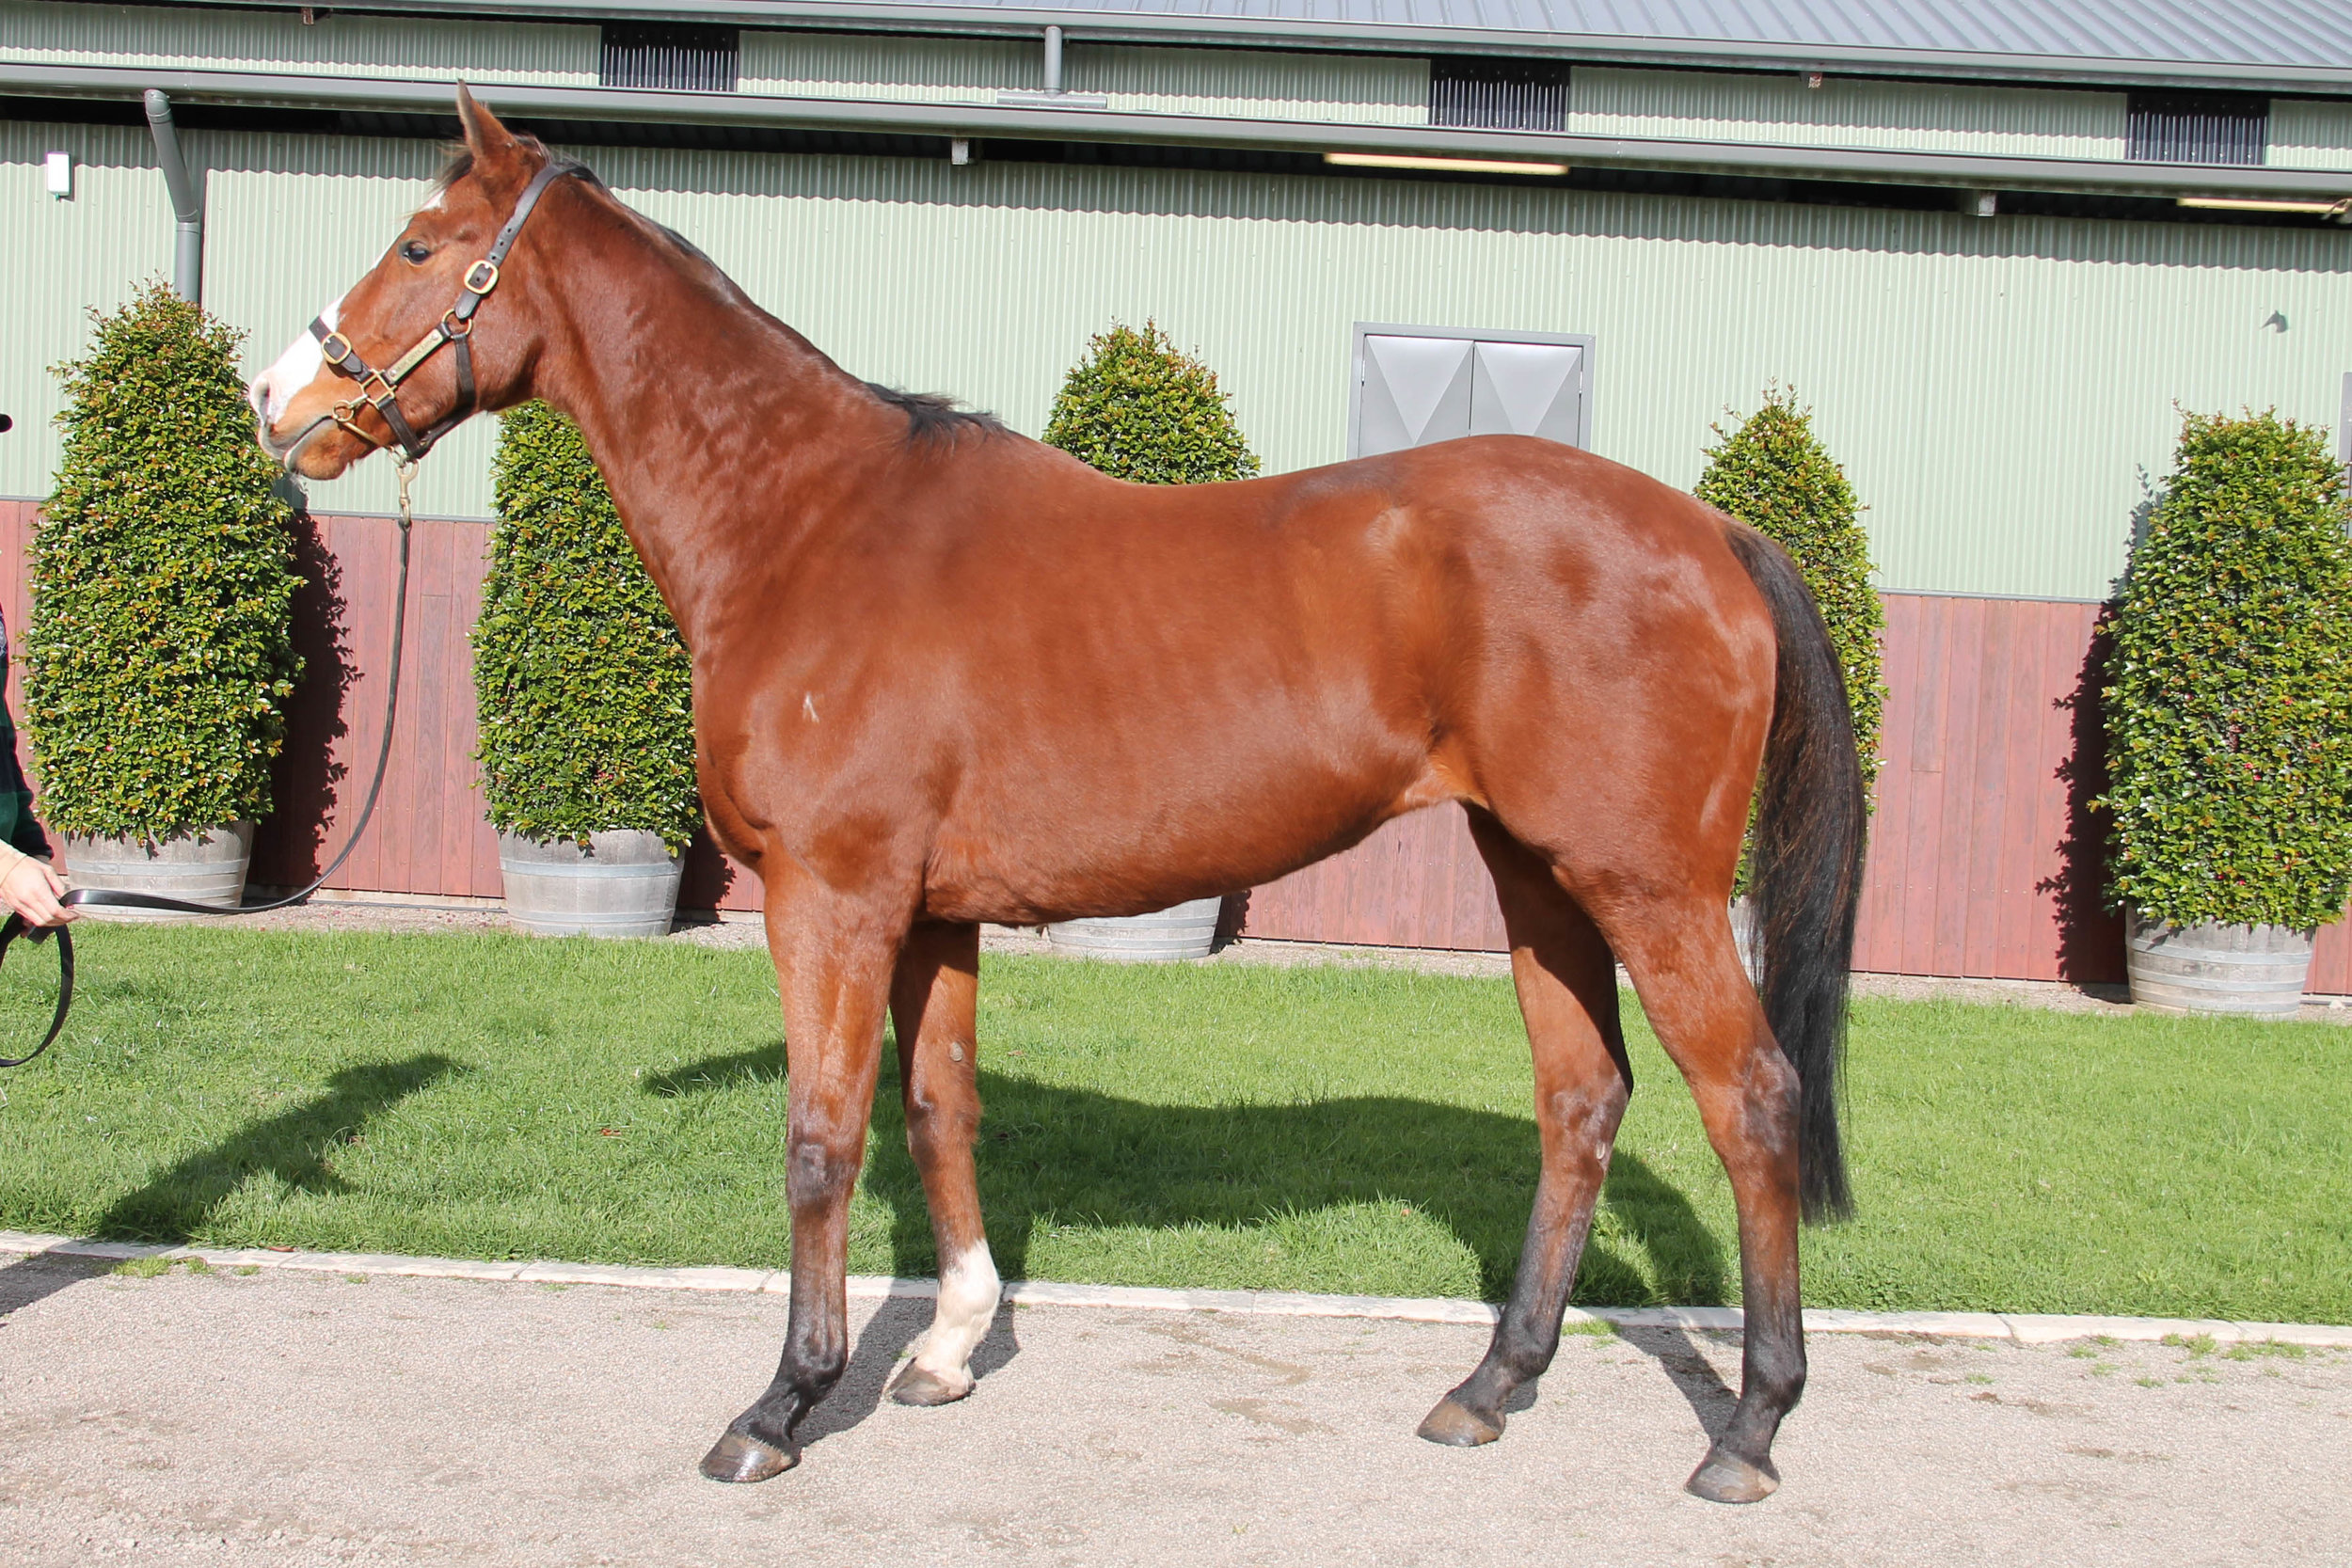 Lot 629 - Hemingway Rules - Not In Foal - Sold for $1,500 to VIC